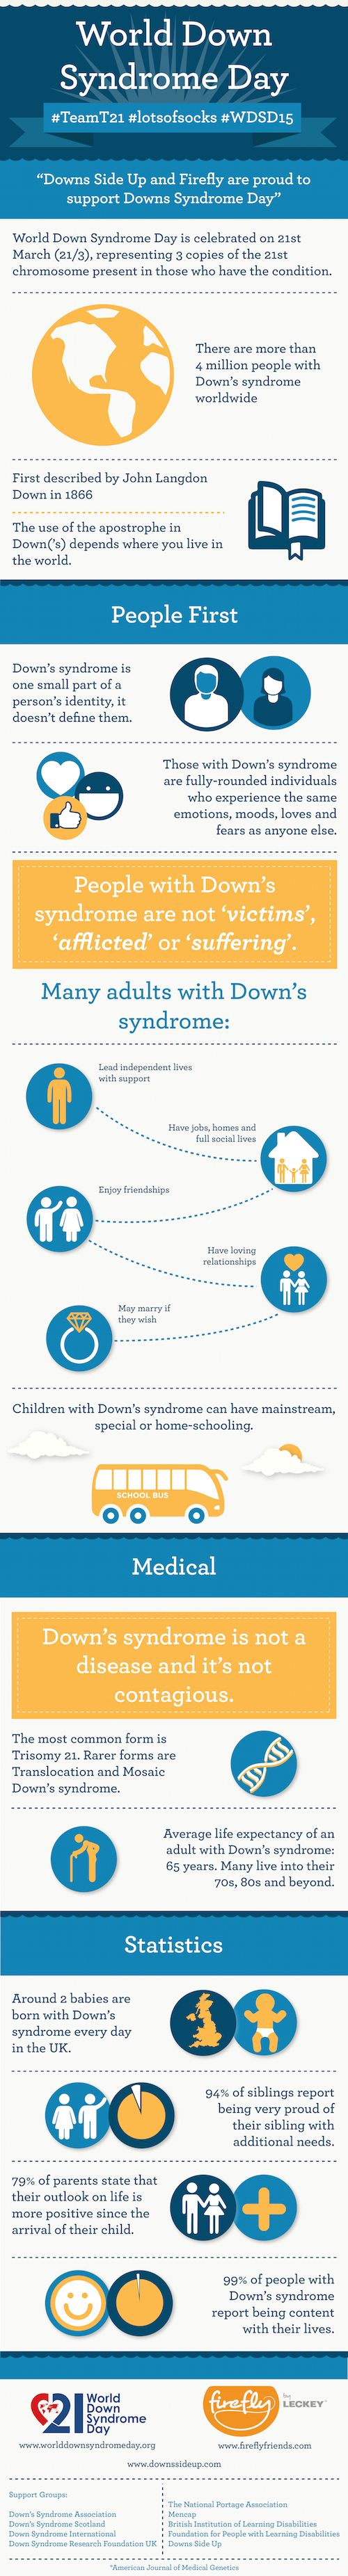 acirc curren down syndrome quotes acirc curren diy sweet down world down syndrome day 2015 and an infographic of facts compiled by firefly by leckey and